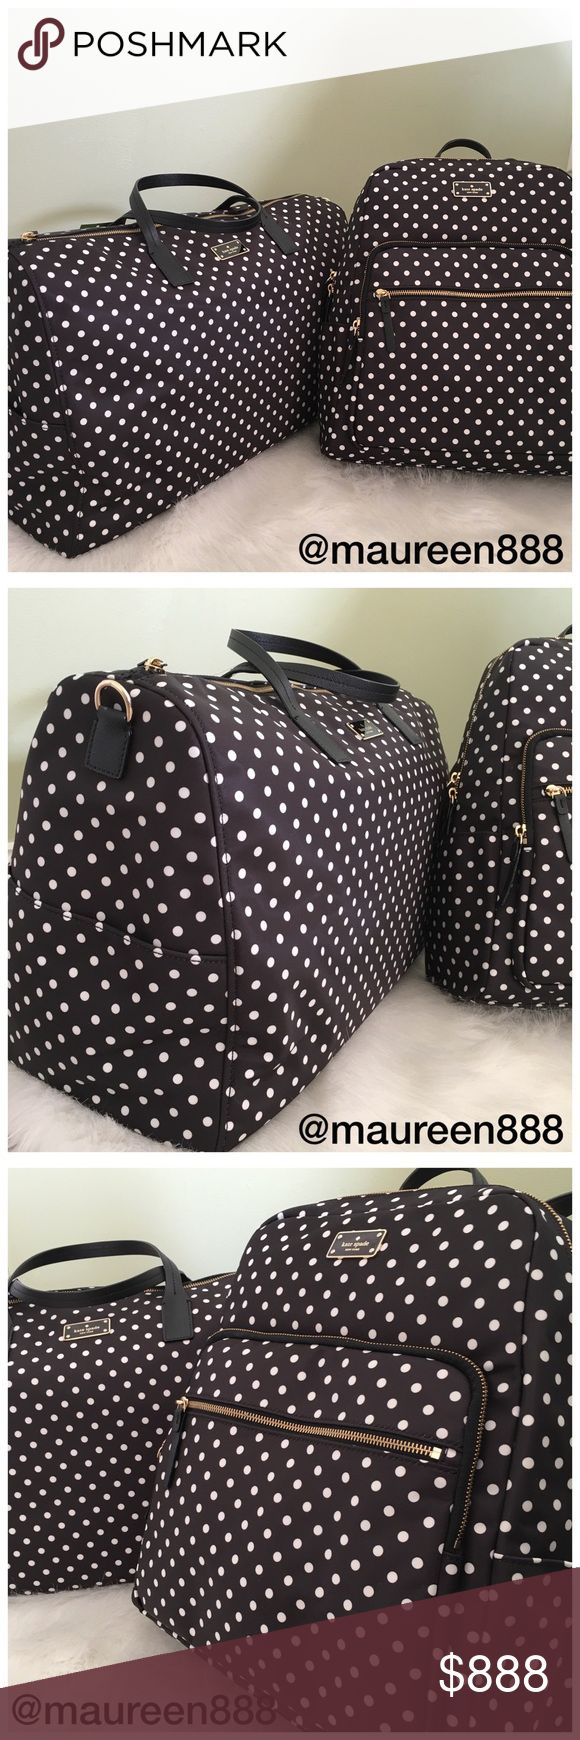 Kate Spade Diamondot Weekender + Backpack Bundle Kate Spade Polkadot Weekender Duffle Bag + Backpack Bundle. Perfect for the mom on the go, grab the traditional backpack for your toddler's things and a change of clothes and freshening up necessities to stash and go for those longer trips or those days spent away from home. Choose nylon, as any mother would. Was packing up for a day with the grandparents and all I could think was how badly I needed a large duffle and a backpack. Found these…